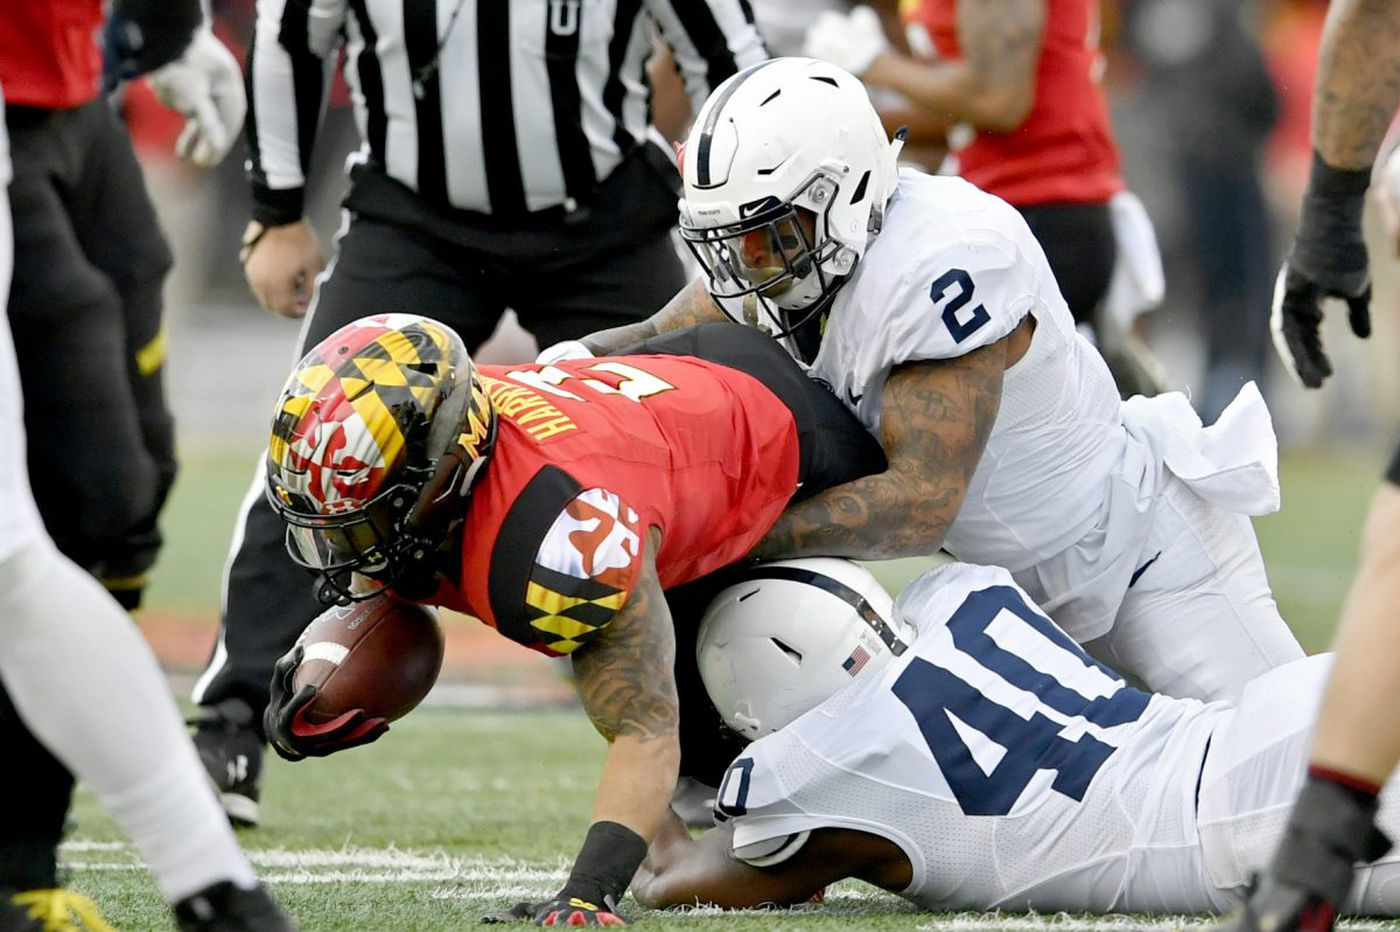 Marcus Allen enjoys homecoming at Penn State victory